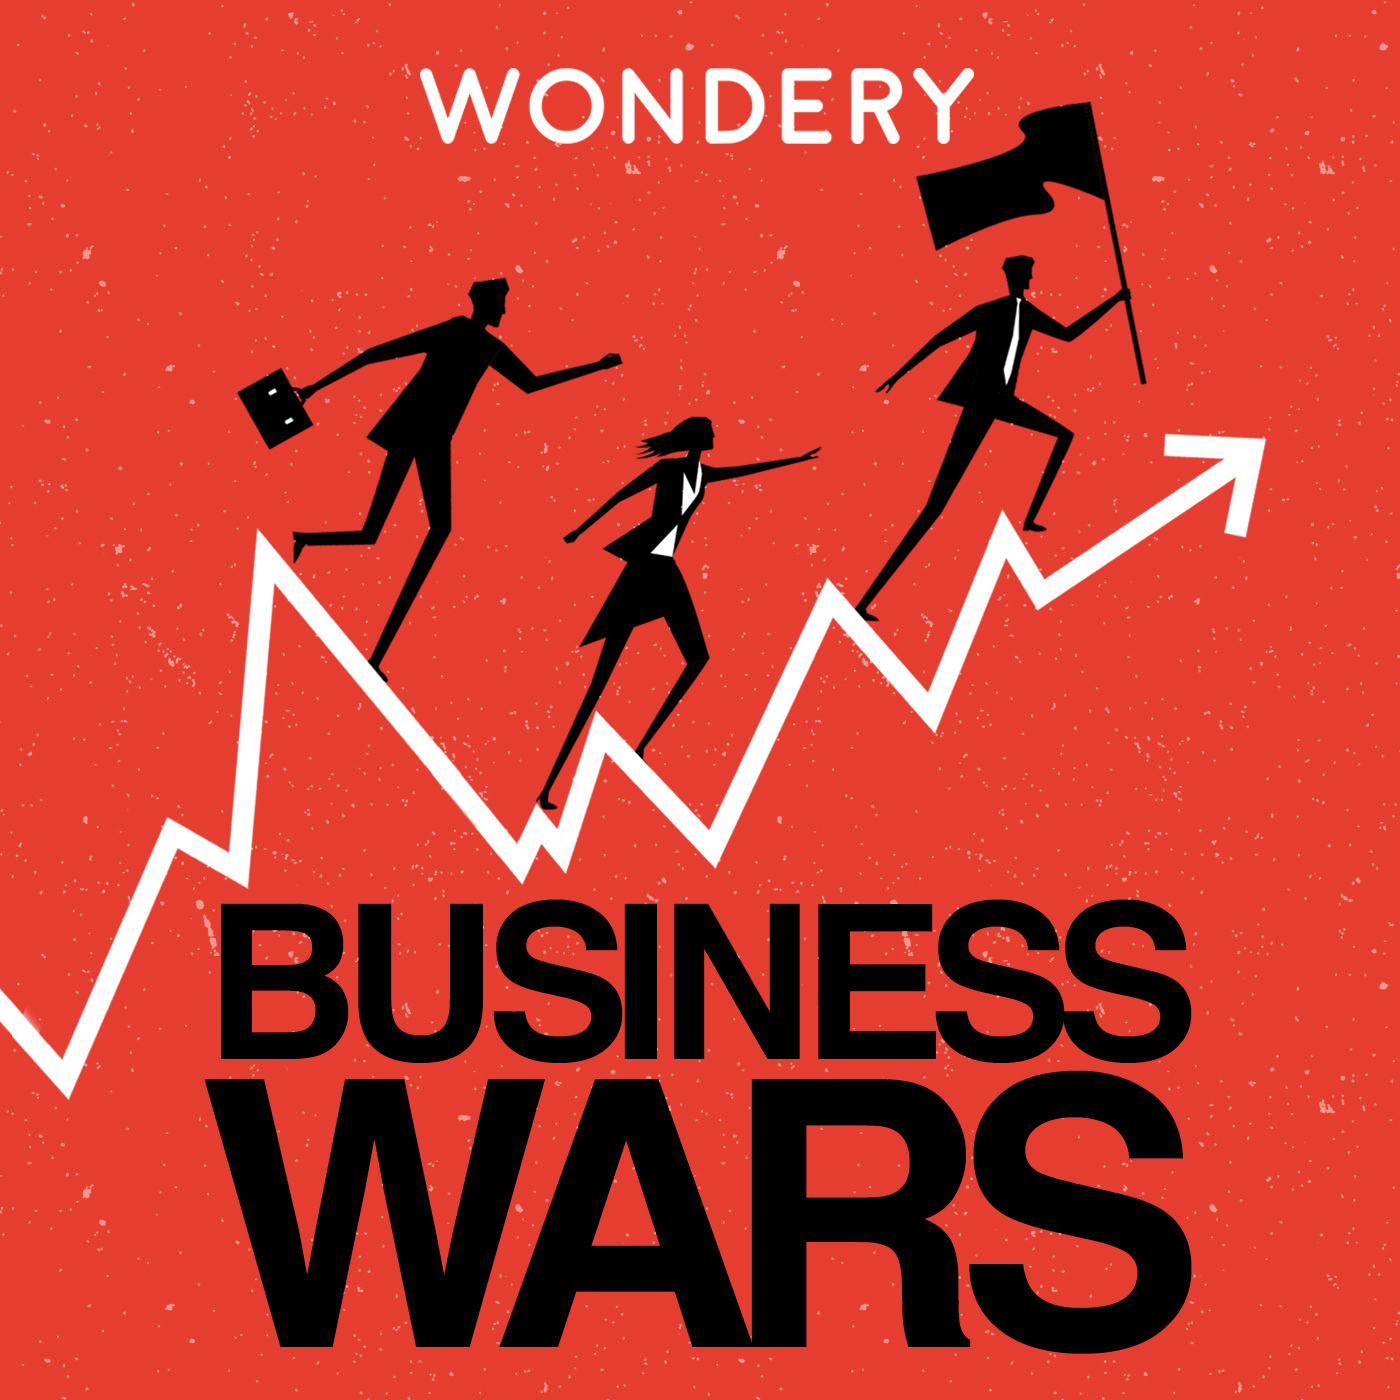 Business Wars by Wondery - This innovative podcast series documents some of the most brutal corporate wars in series form. Some of the spotlights include Nintendo vs. Sony, Nike vs. Adidas, and Marvel vs. DC. Give it a listen!